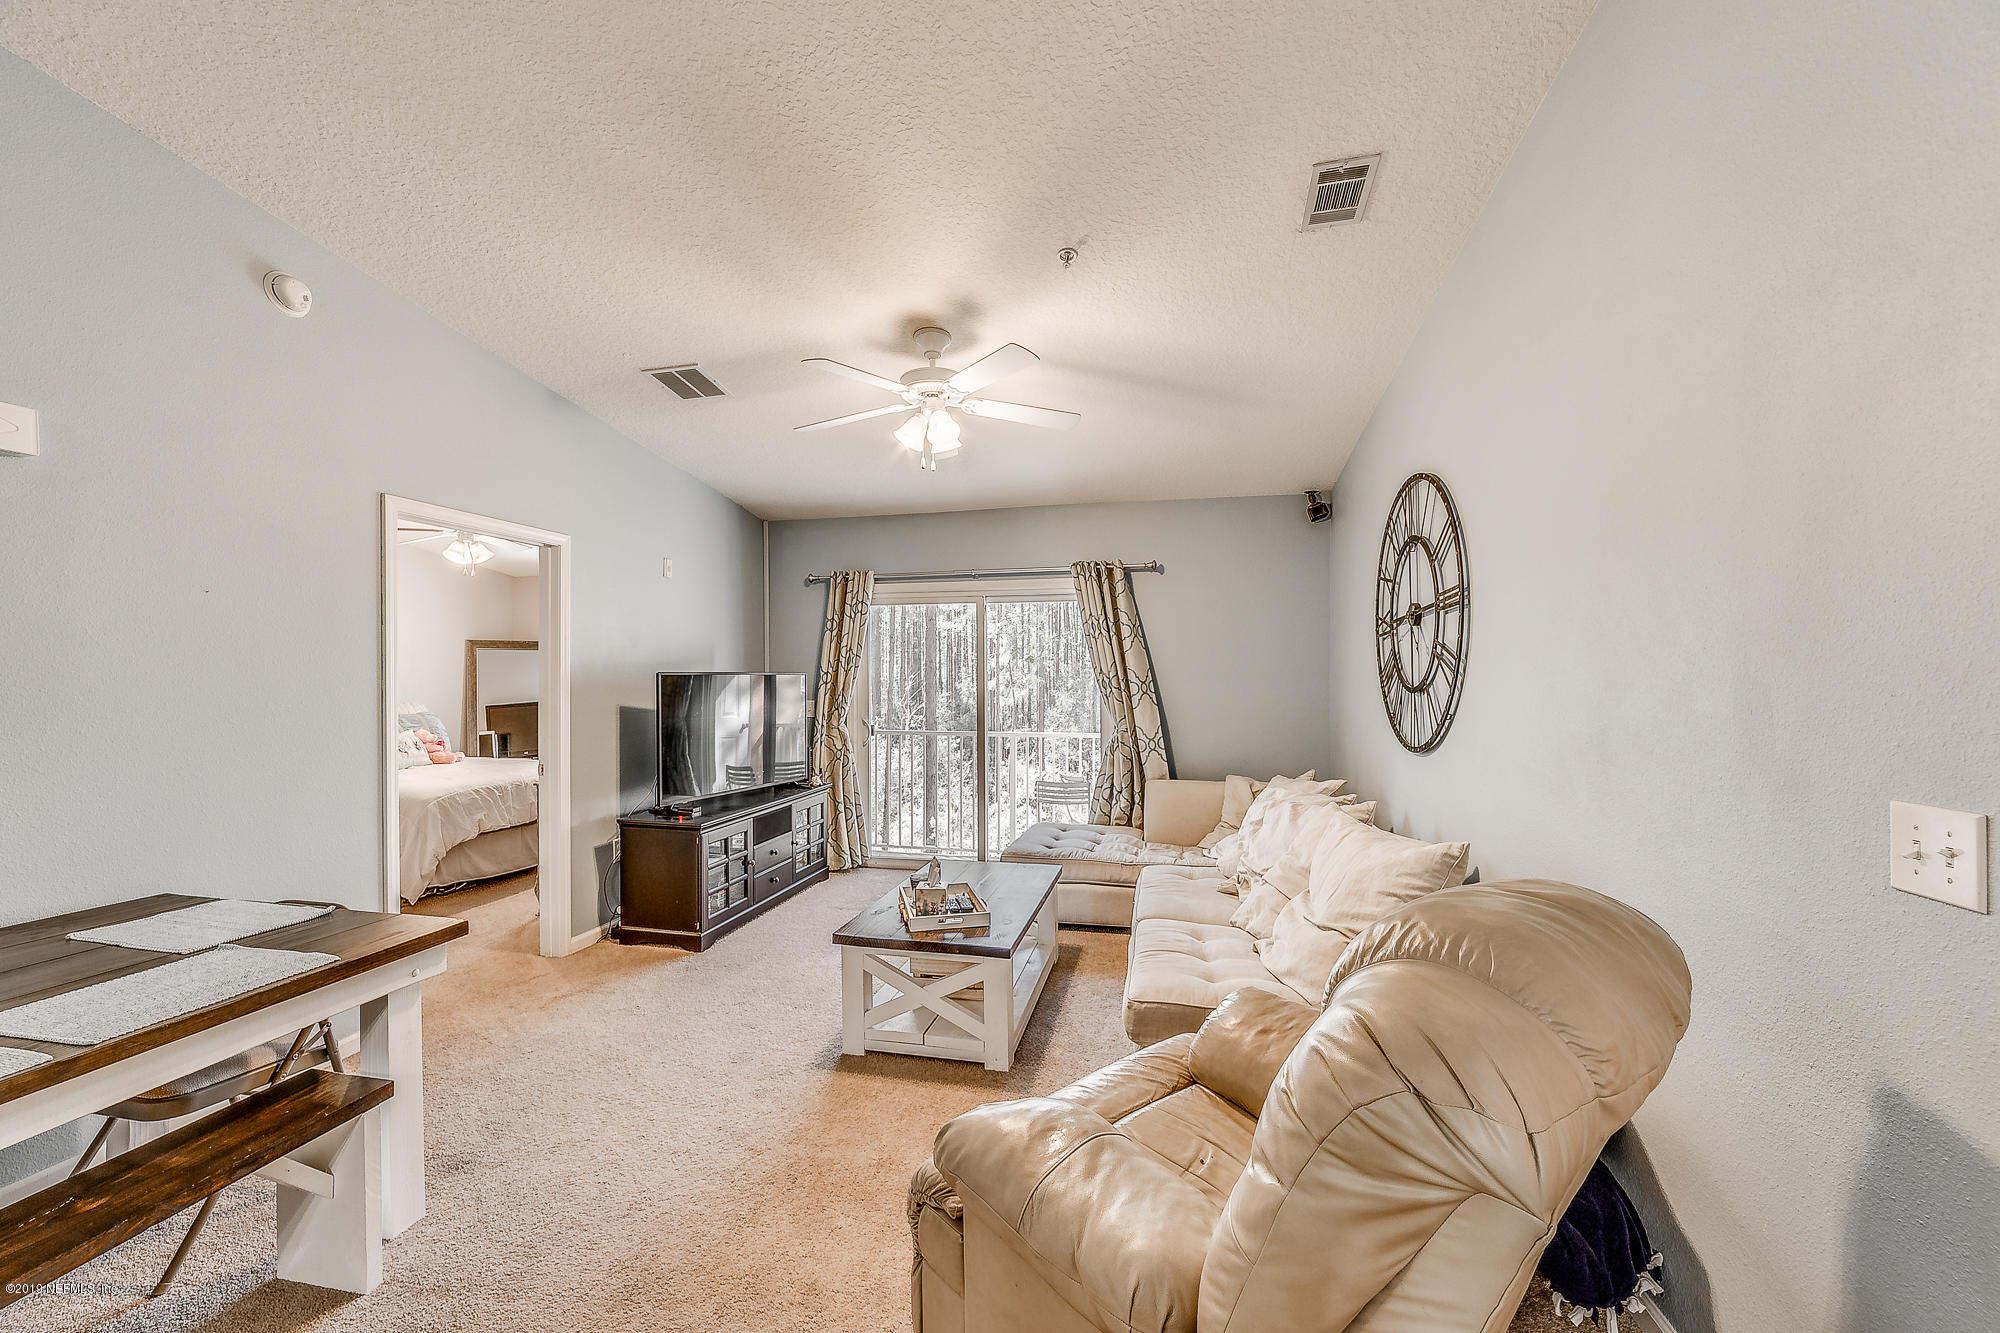 224  LARKIN PL  106, one of homes for sale in St Johns